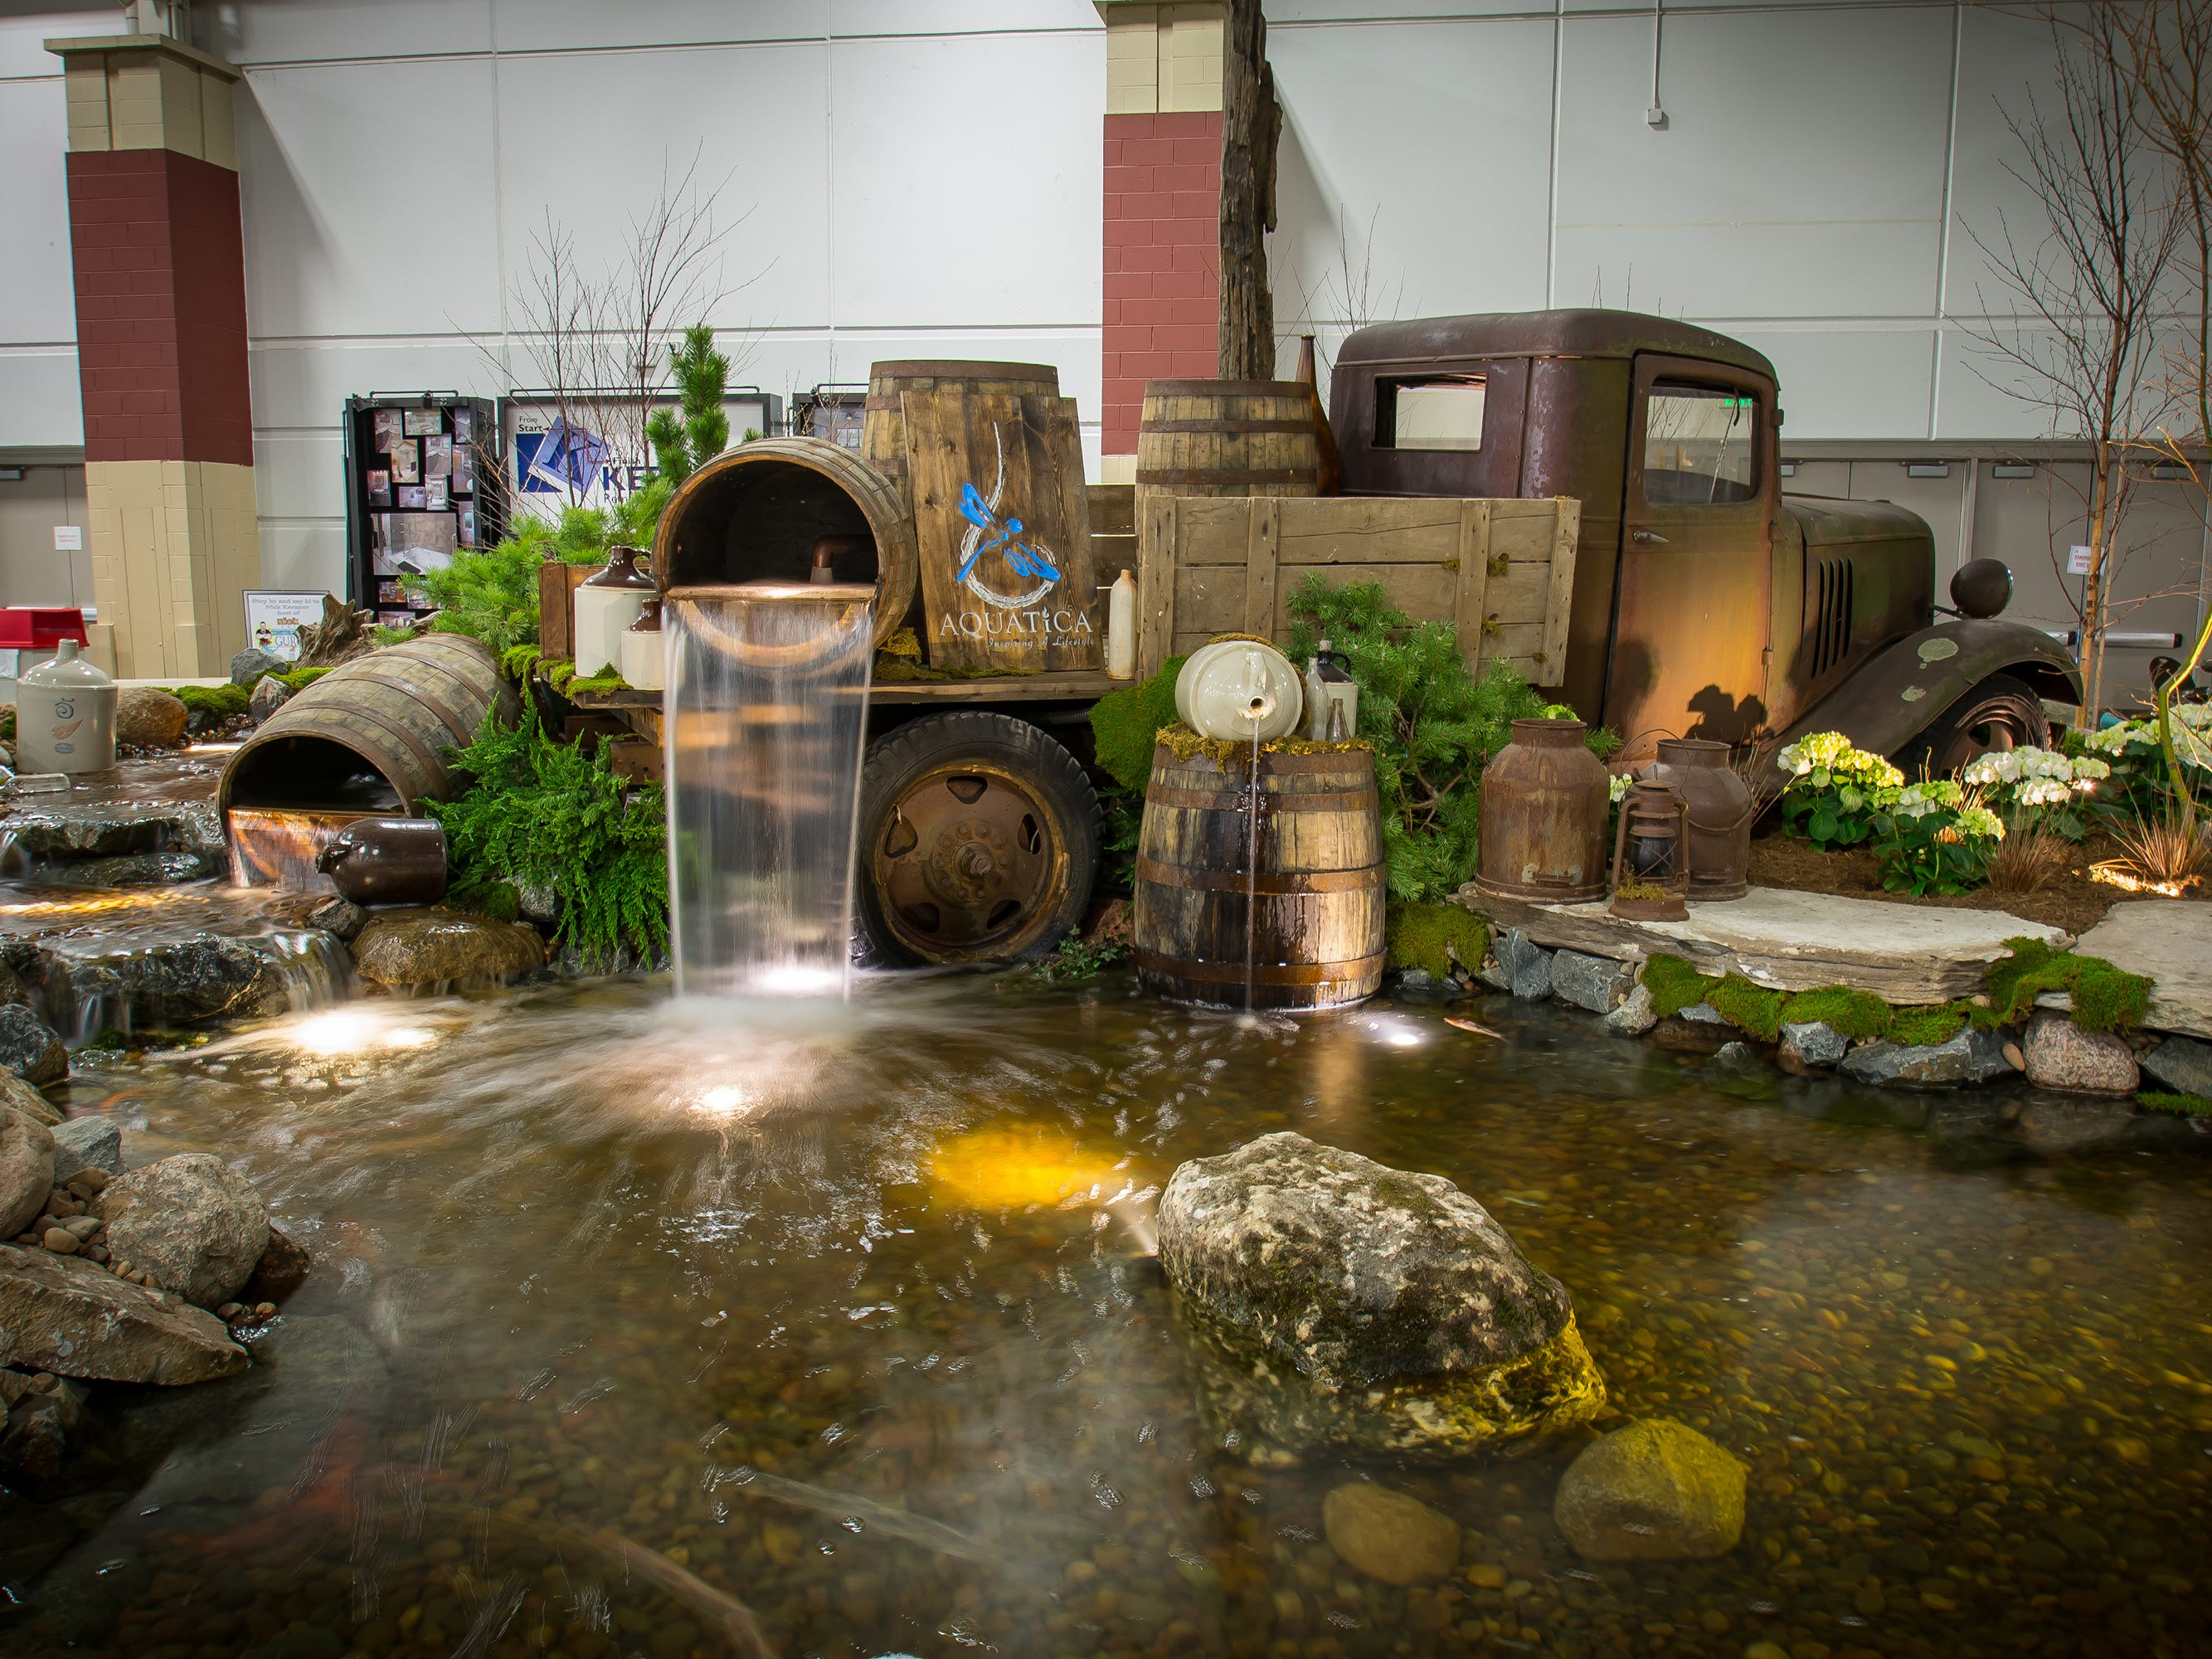 This water setup from Aquatica, using an old truck, was displayed at the Greater Milwaukee Area Realtors Home and Garden show in 2017.